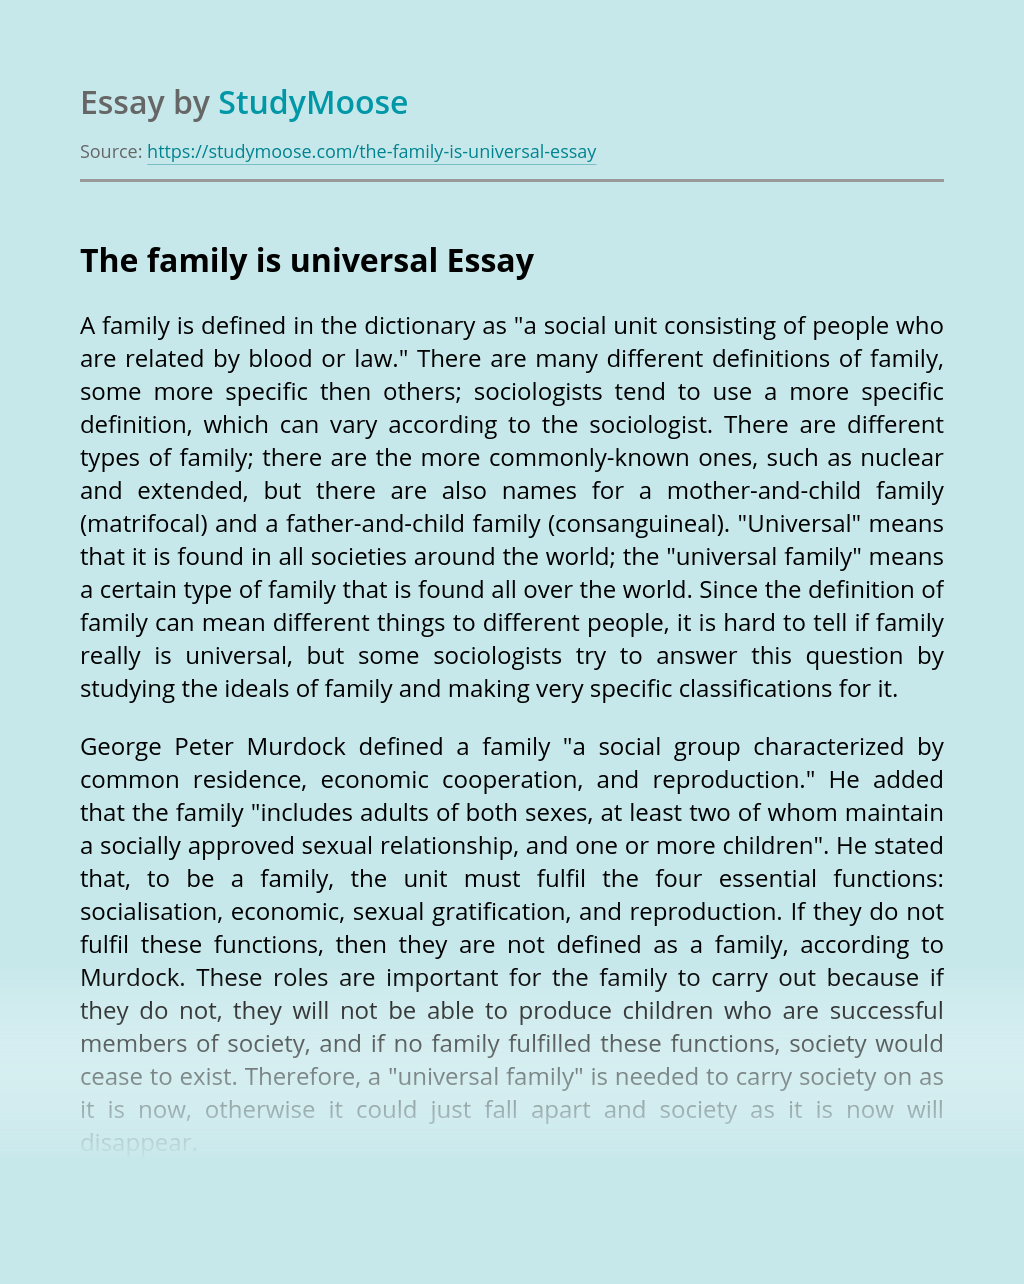 The family is universal